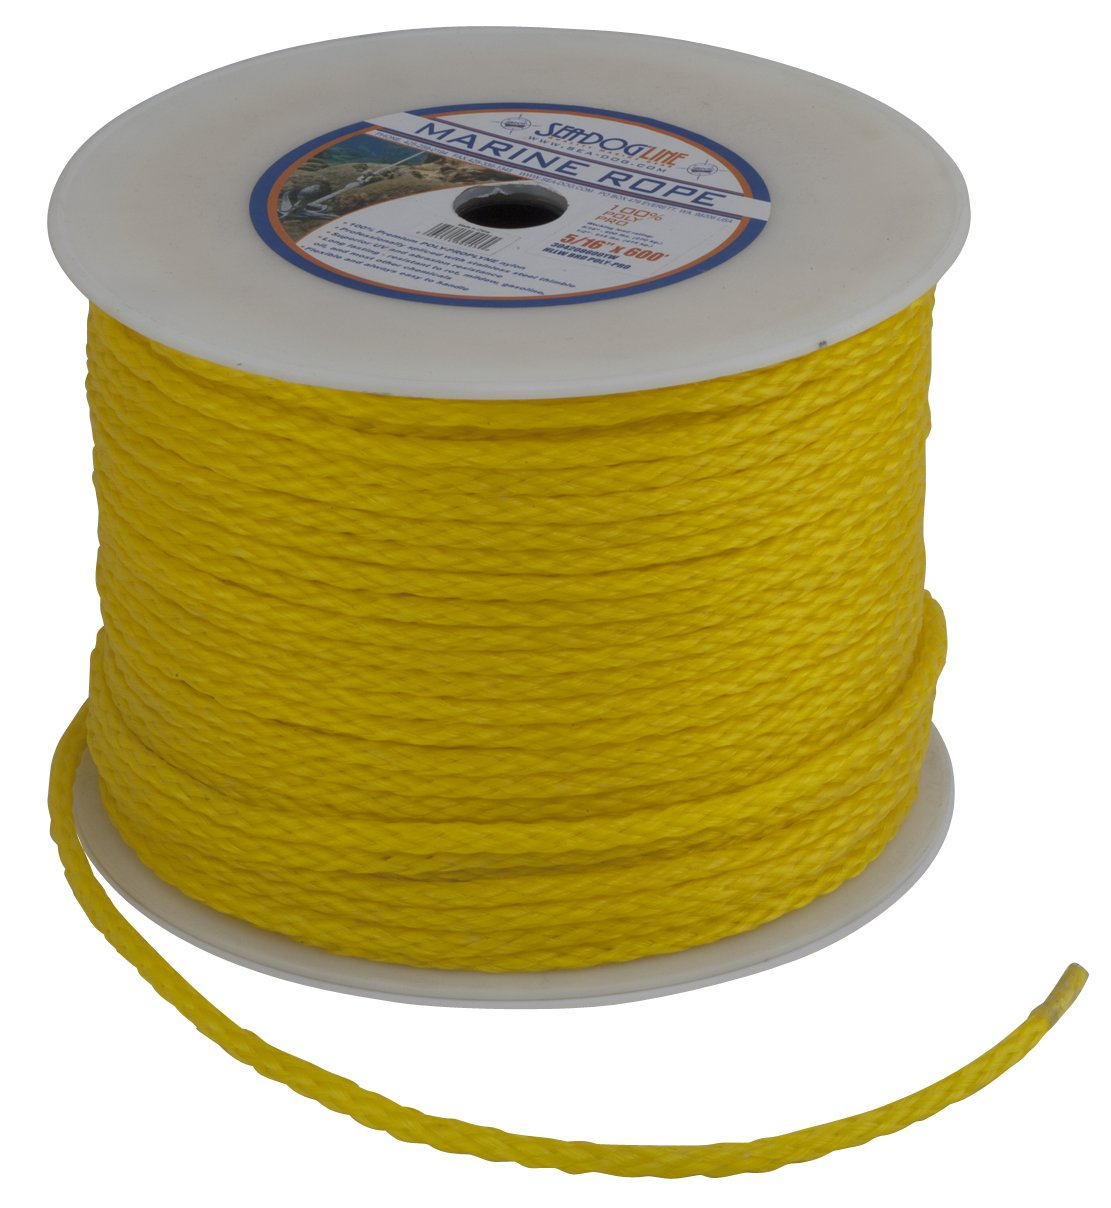 1//4 x 600 Yellow 1//4 x 600/' Sea Dog 304206600YW Hollow Braided Polypropylene Rope Spool Yellow Northern Wholesale Supply Inc Boating